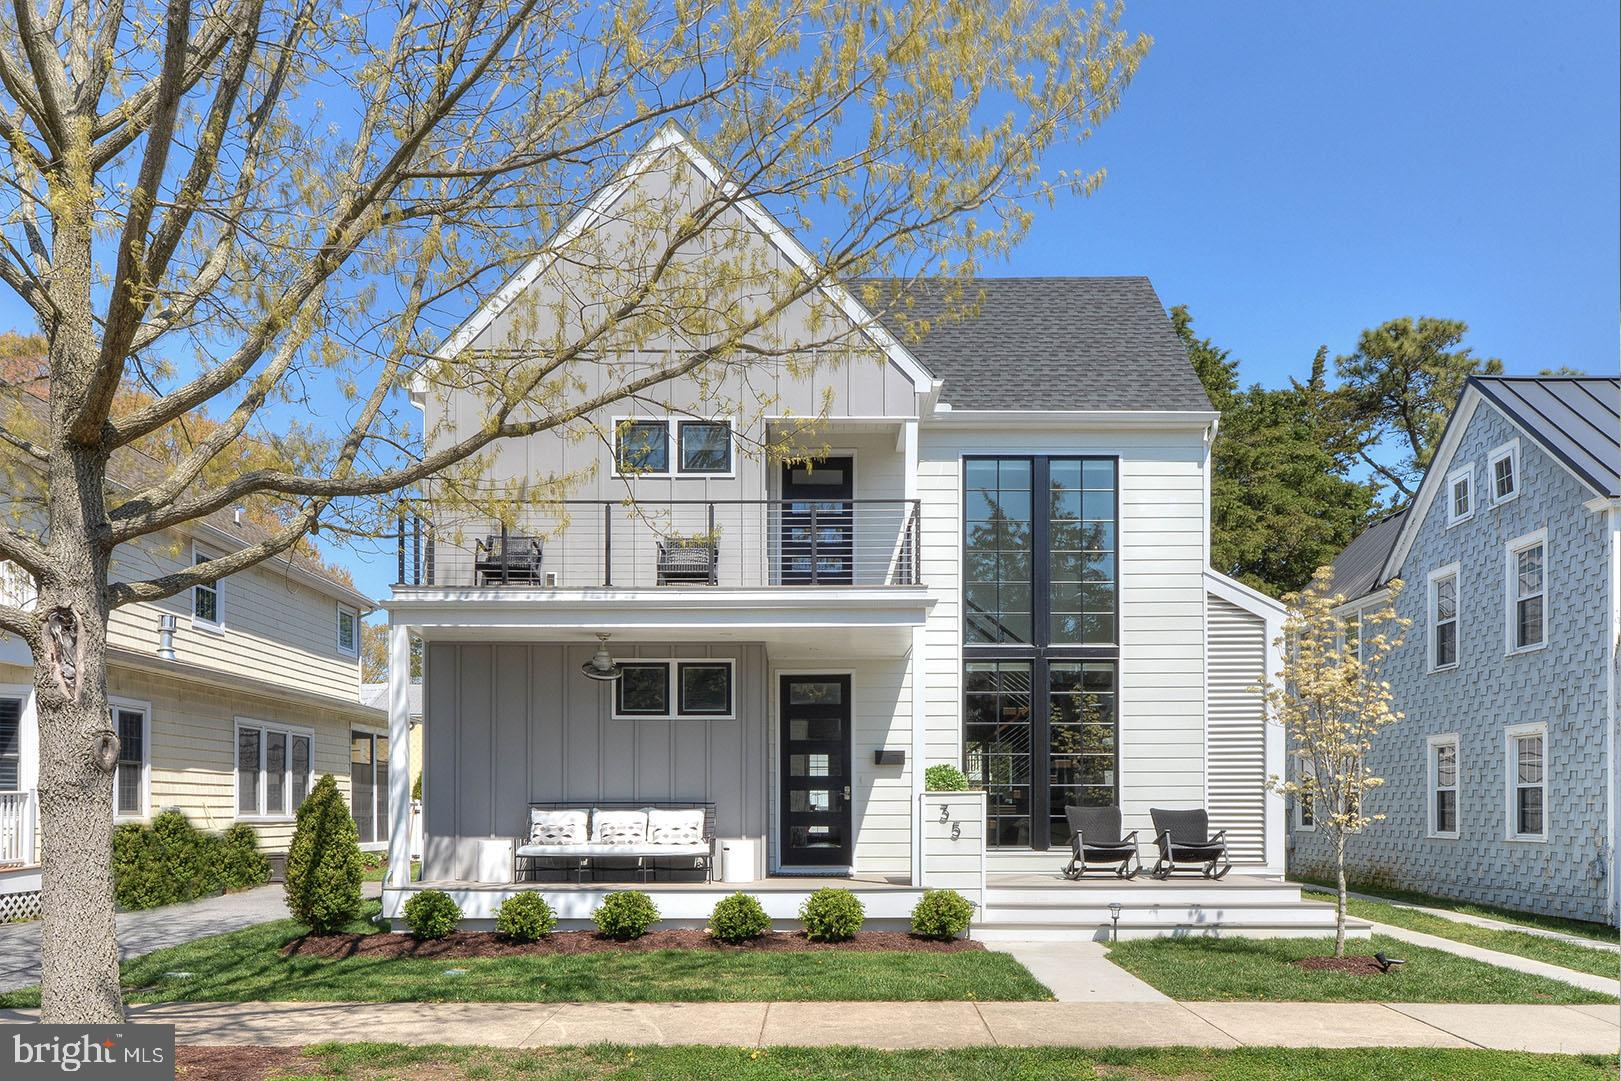 The renovated Maryland Avenue Farmhouse is a luxury home just over a block from the ocean and within